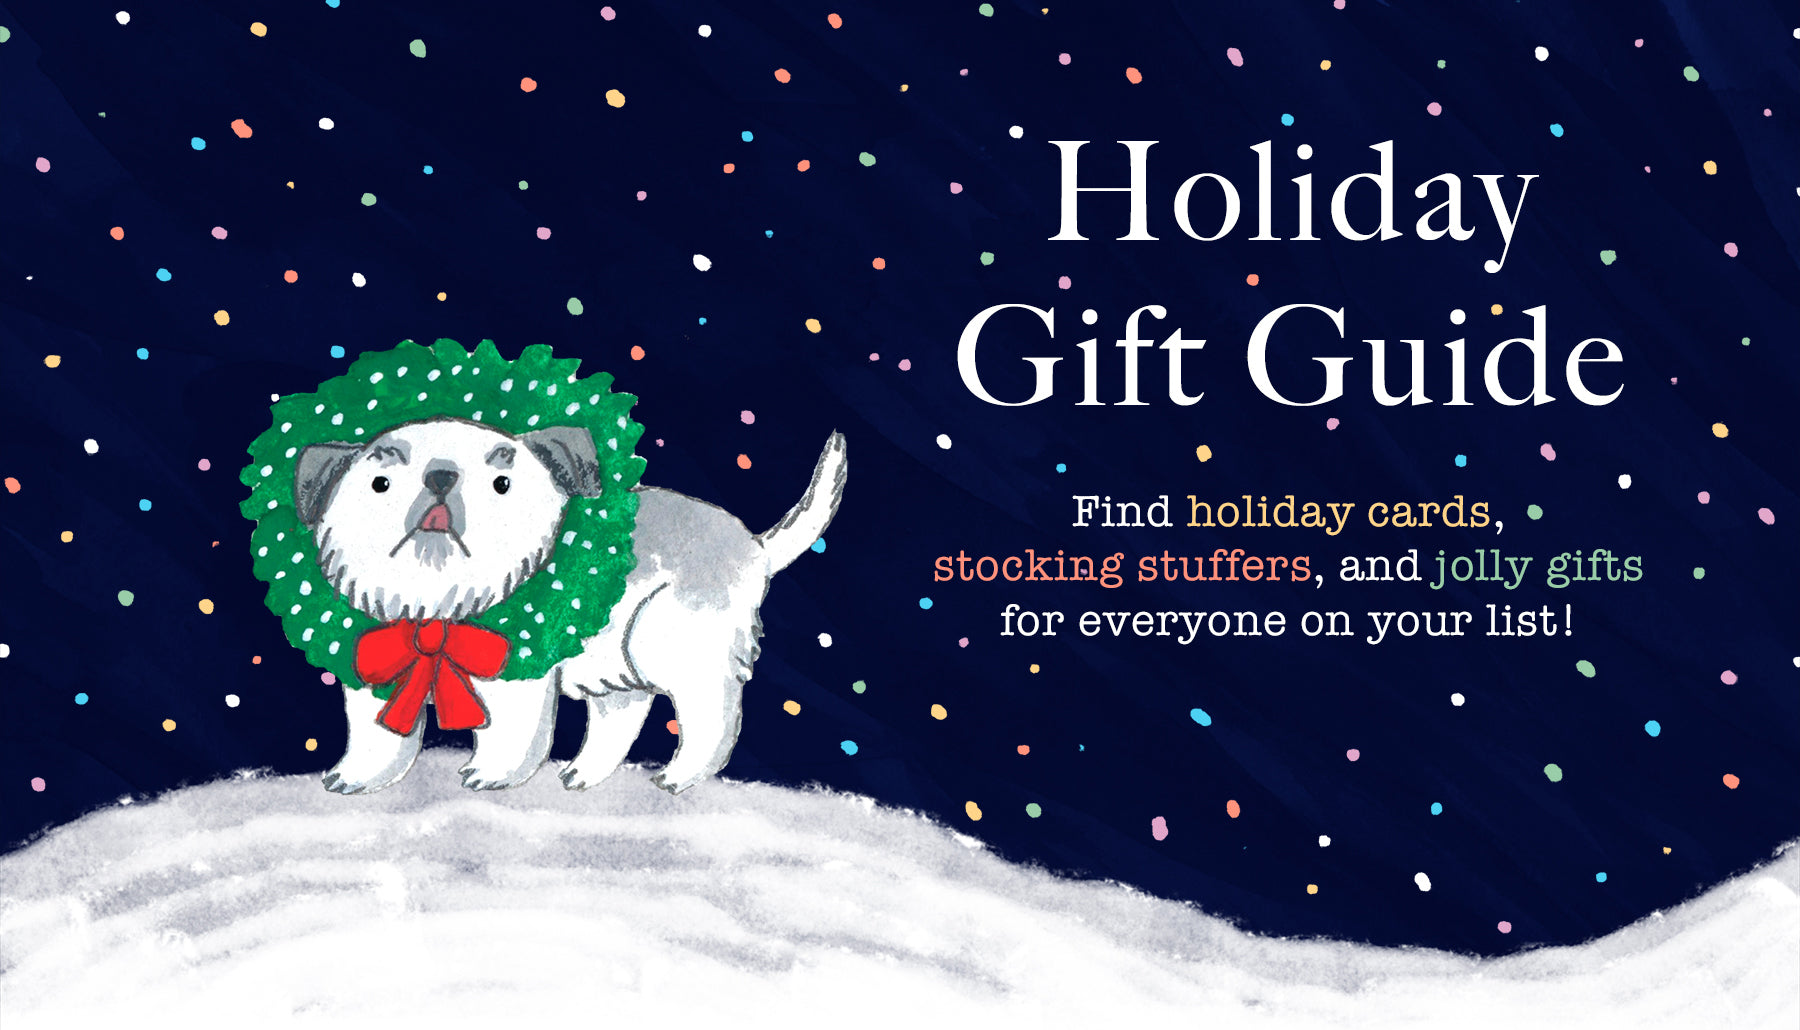 Find holiday cards, stocking stuffers, and jolly gifts for everyone on your list!